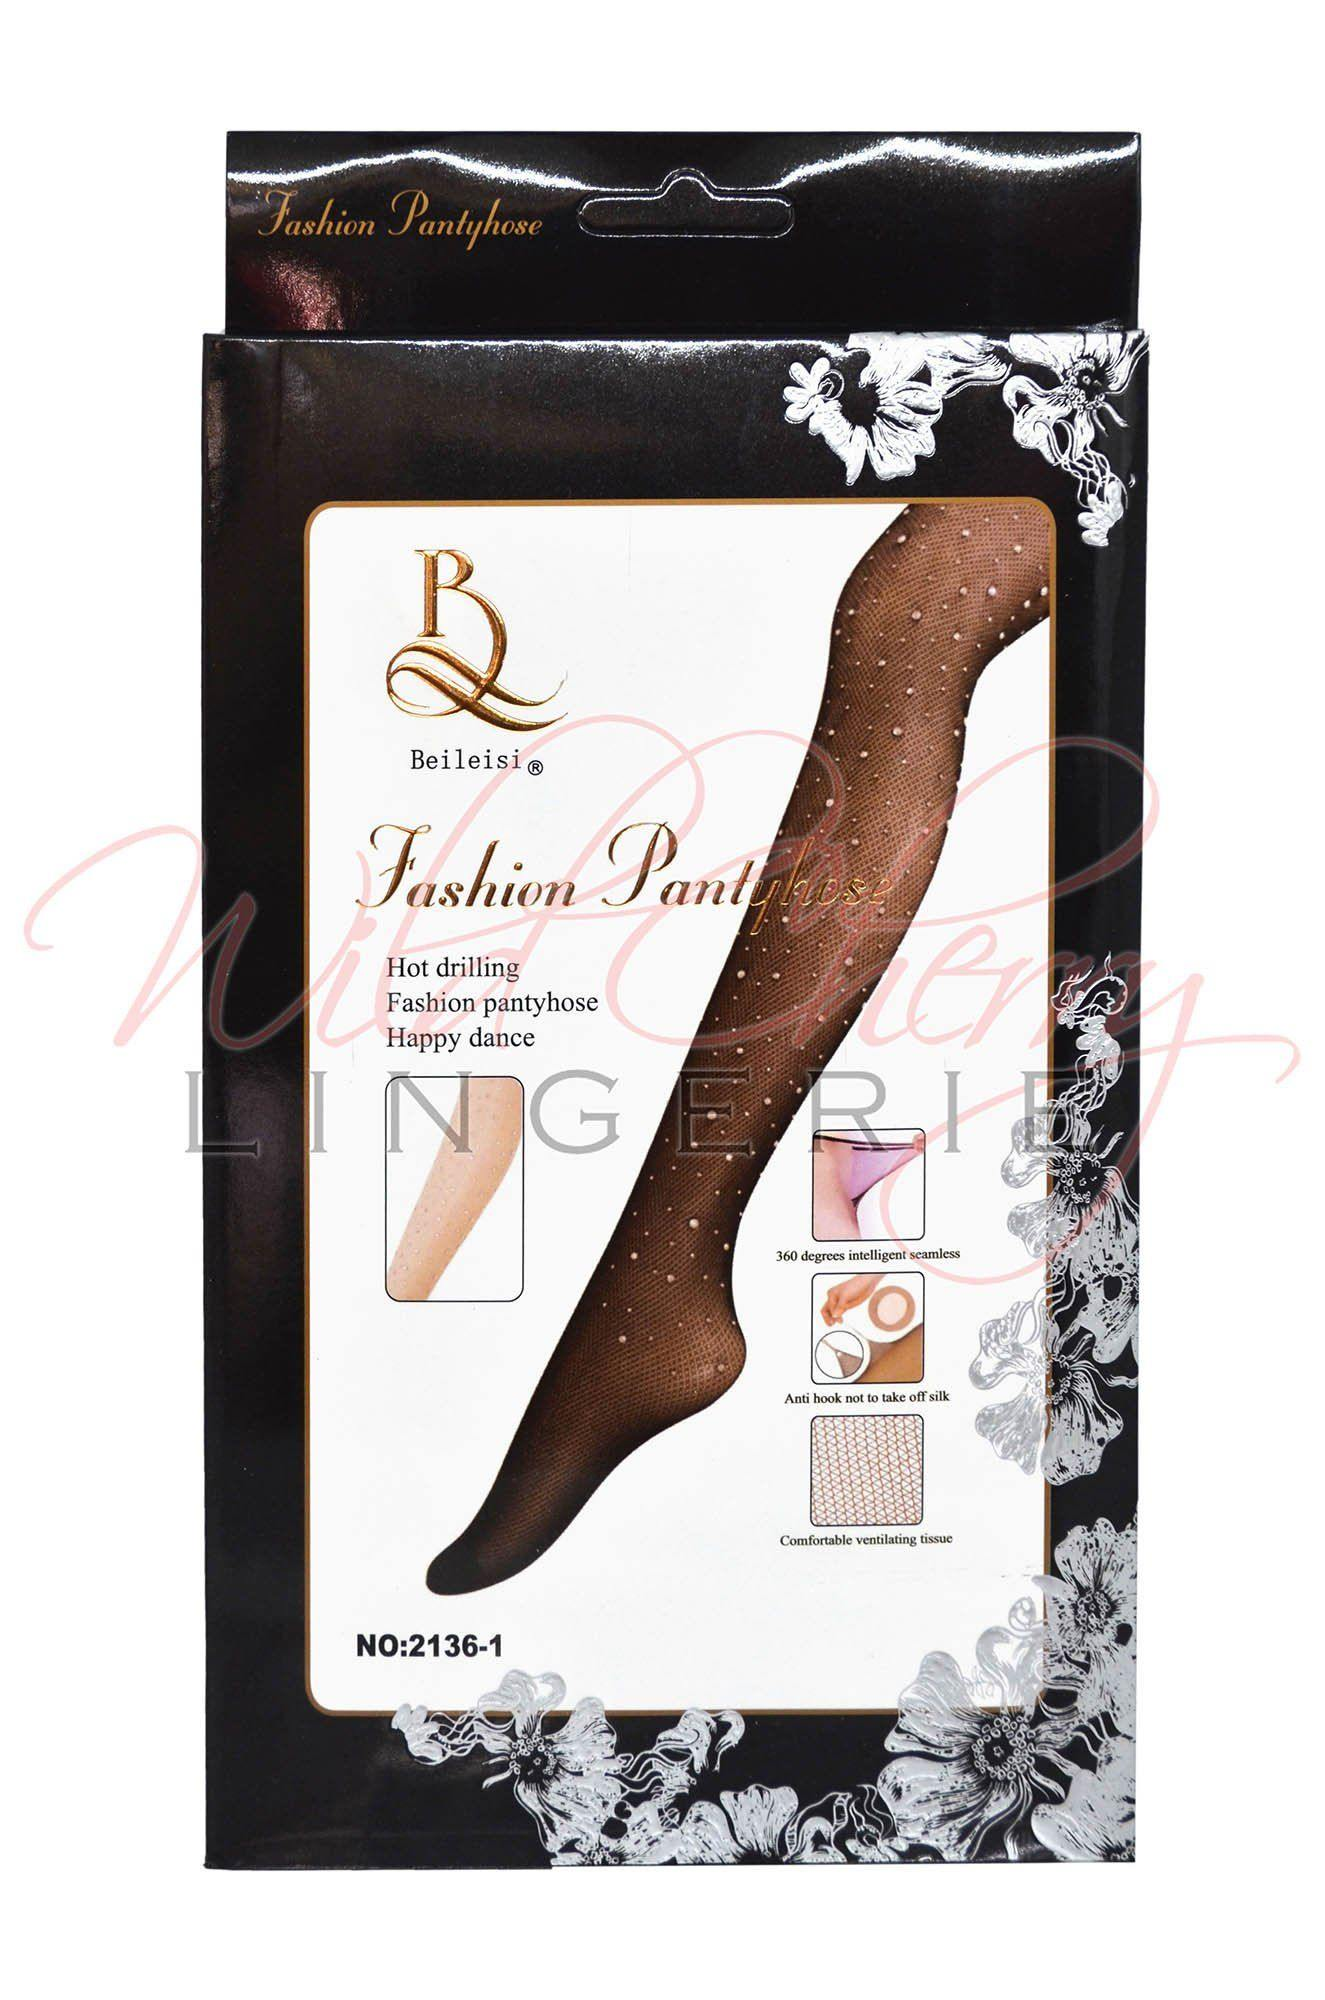 Jewelled  Up Pantyhose, Legwear, Unbranded - Wild Cherry Lingerie